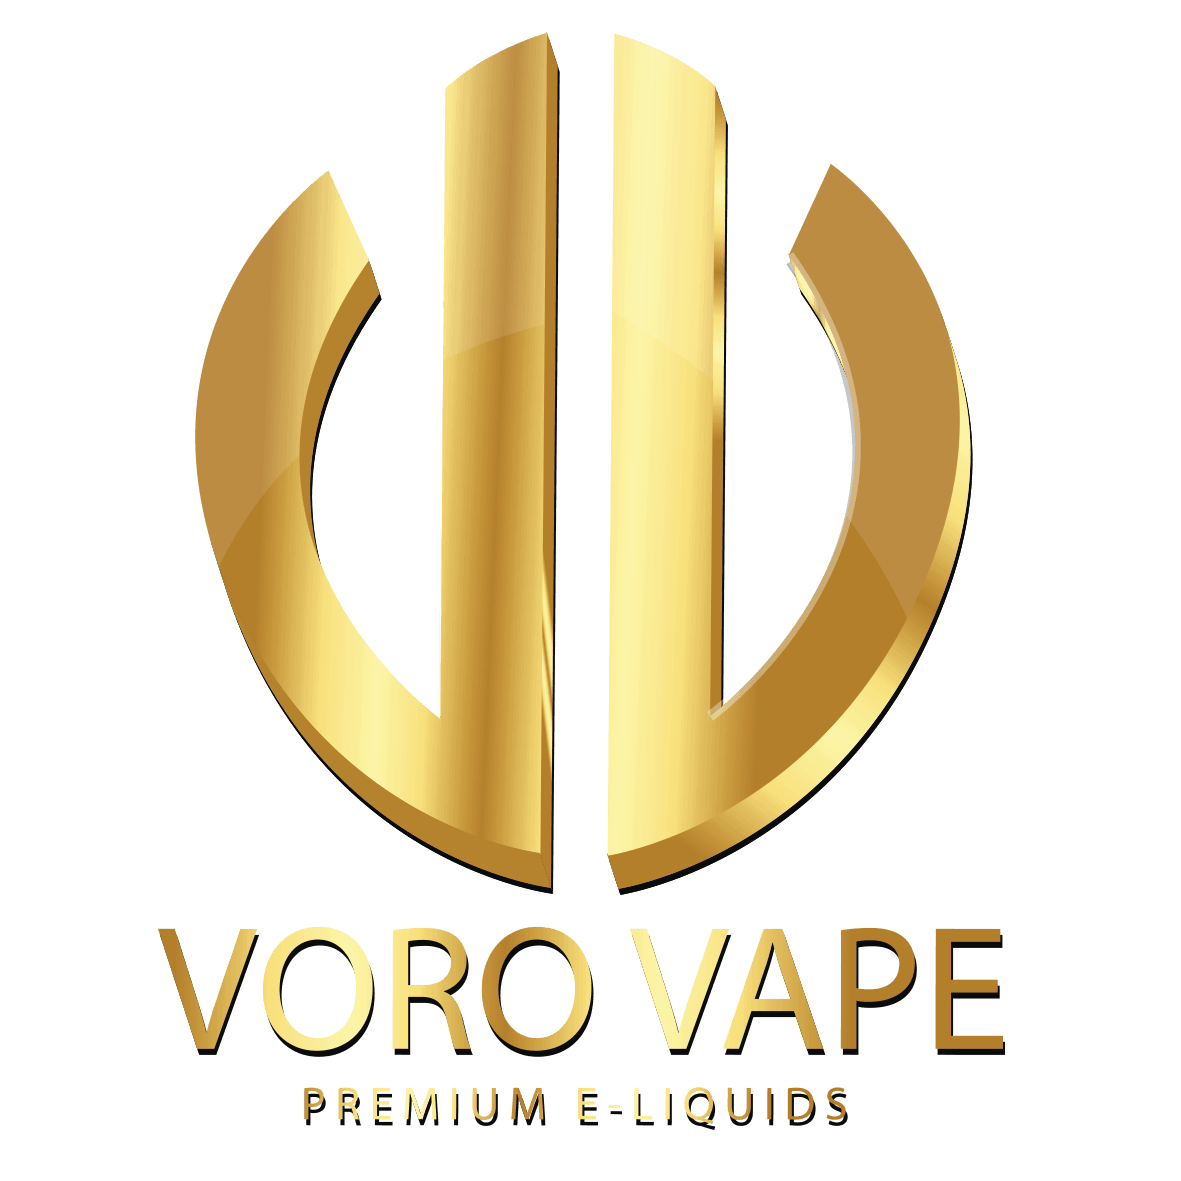 Logo Voro Vape 300x300 - First Date E-Liquid Shortfill by Voro Vape